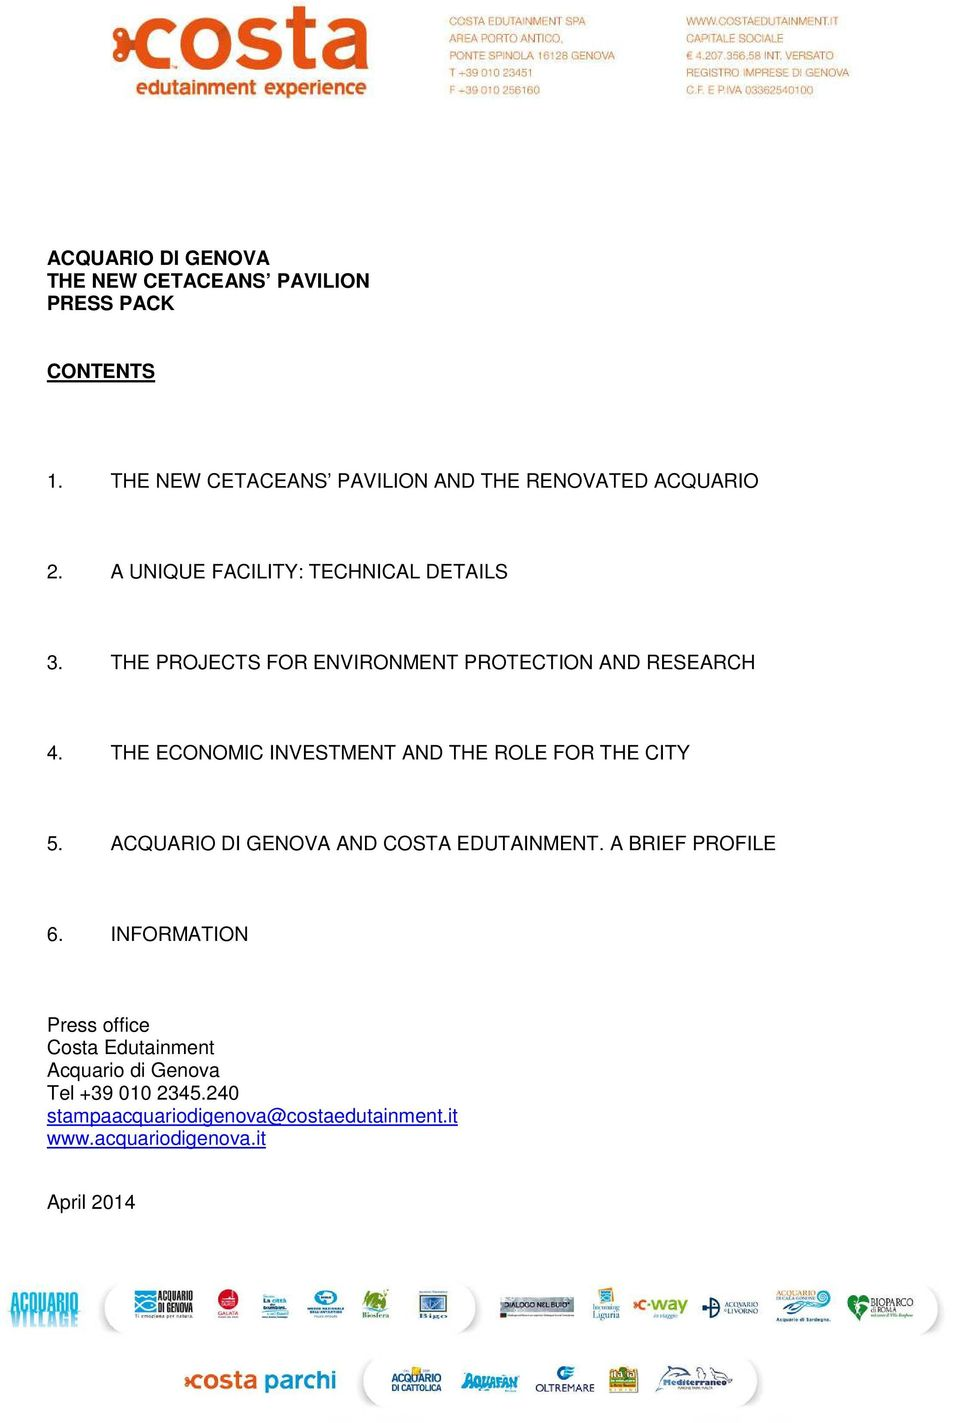 THE PROJECTS FOR ENVIRONMENT PROTECTION AND RESEARCH 4. THE ECONOMIC INVESTMENT AND THE ROLE FOR THE CITY 5.